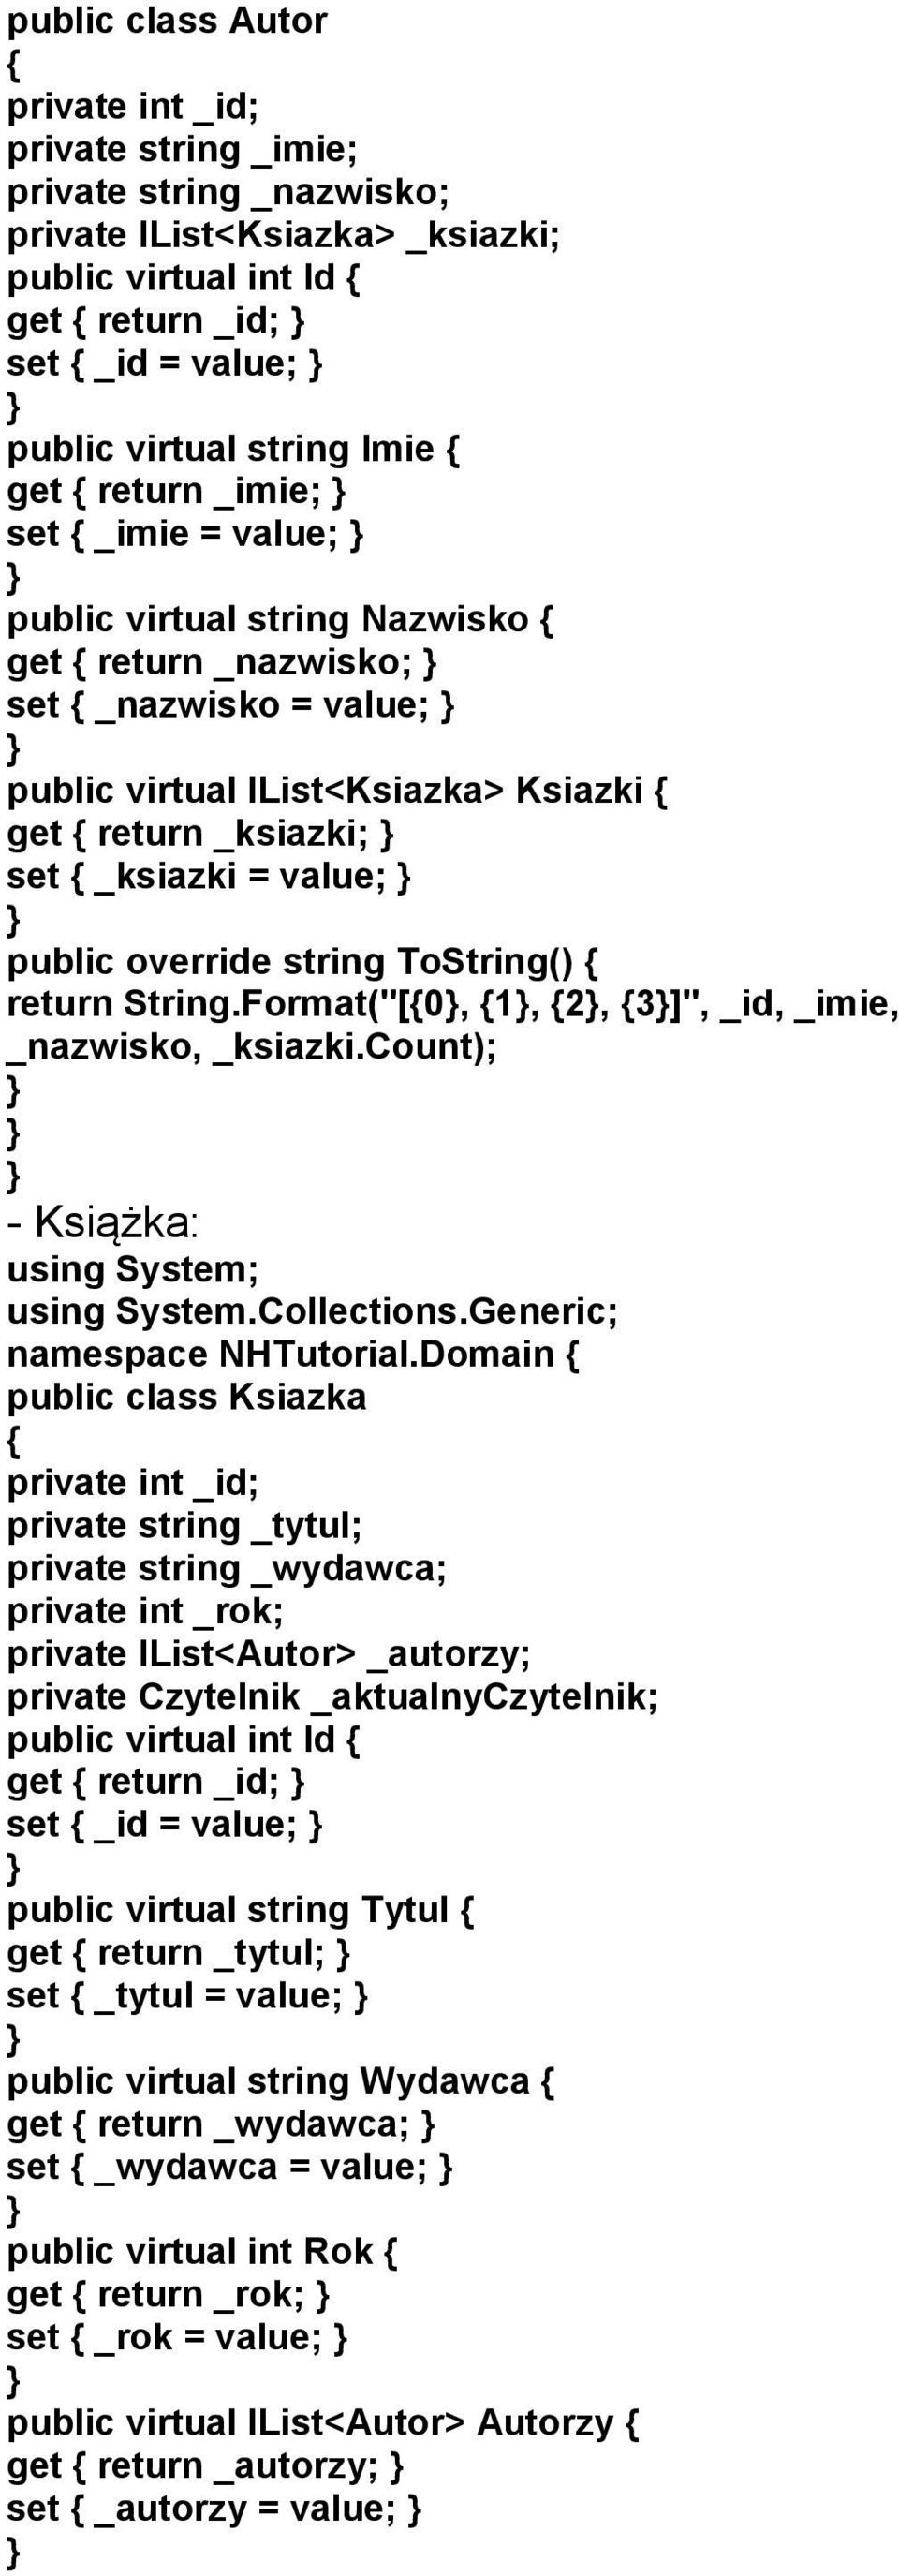 "public override string ToString() return String.Format(""[0, 1, 2, 3]"", _id, _imie, _nazwisko, _ksiazki.count); - Książka: using System; using System.Collections.Generic; namespace NHTutorial."